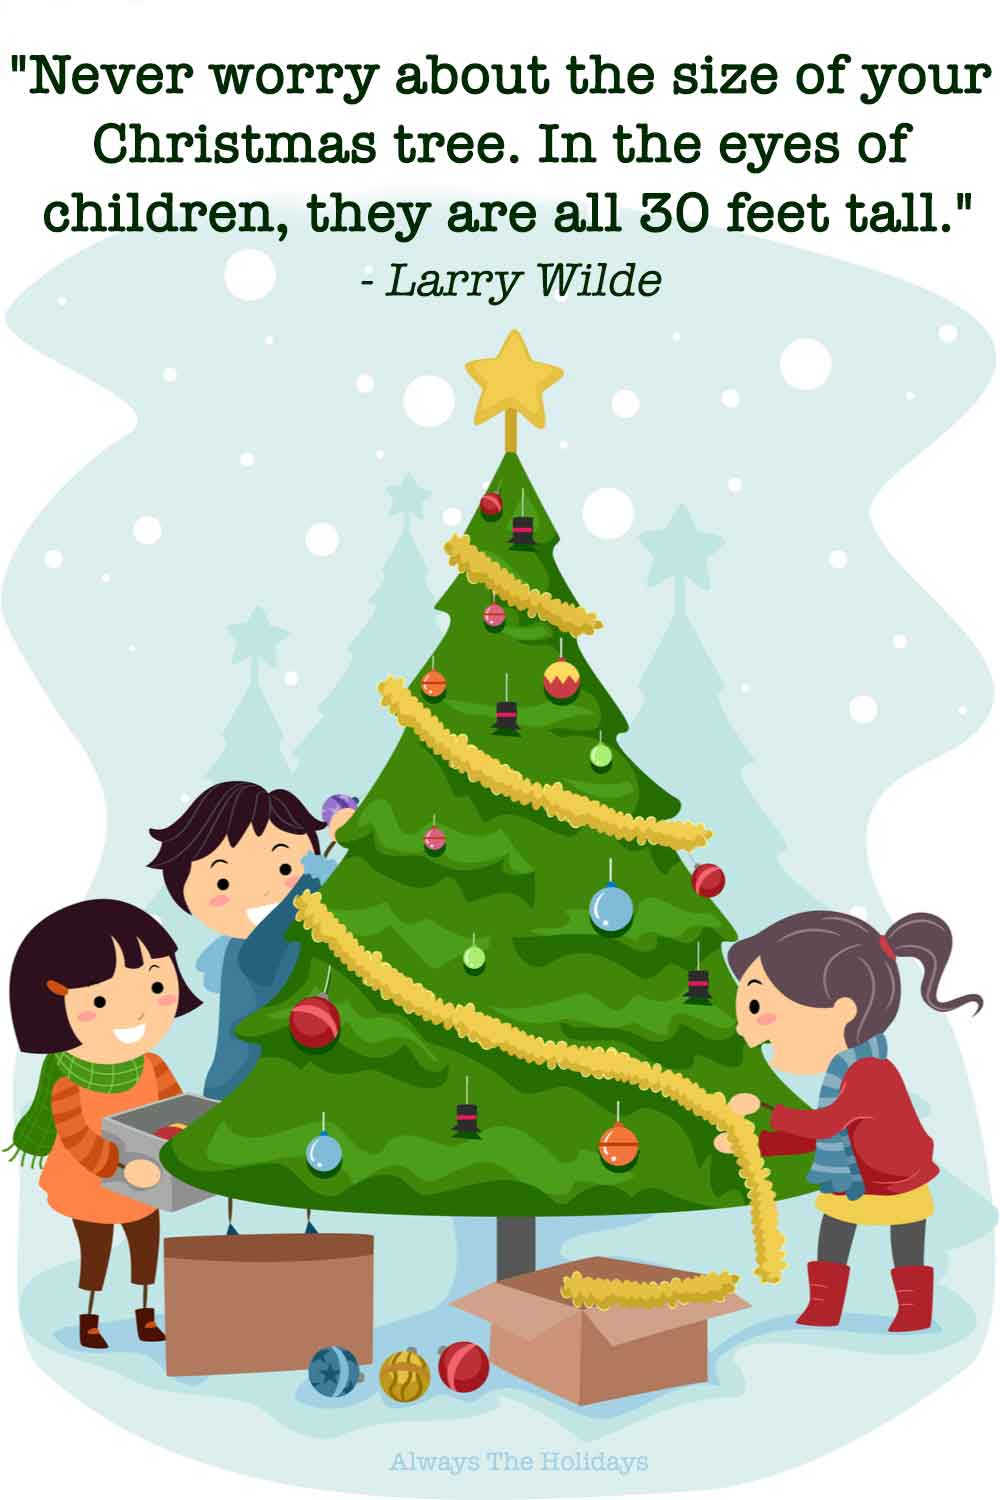 Three cartoon kids decorating a Christmas tree with a Christmas tree quotes text overlay.